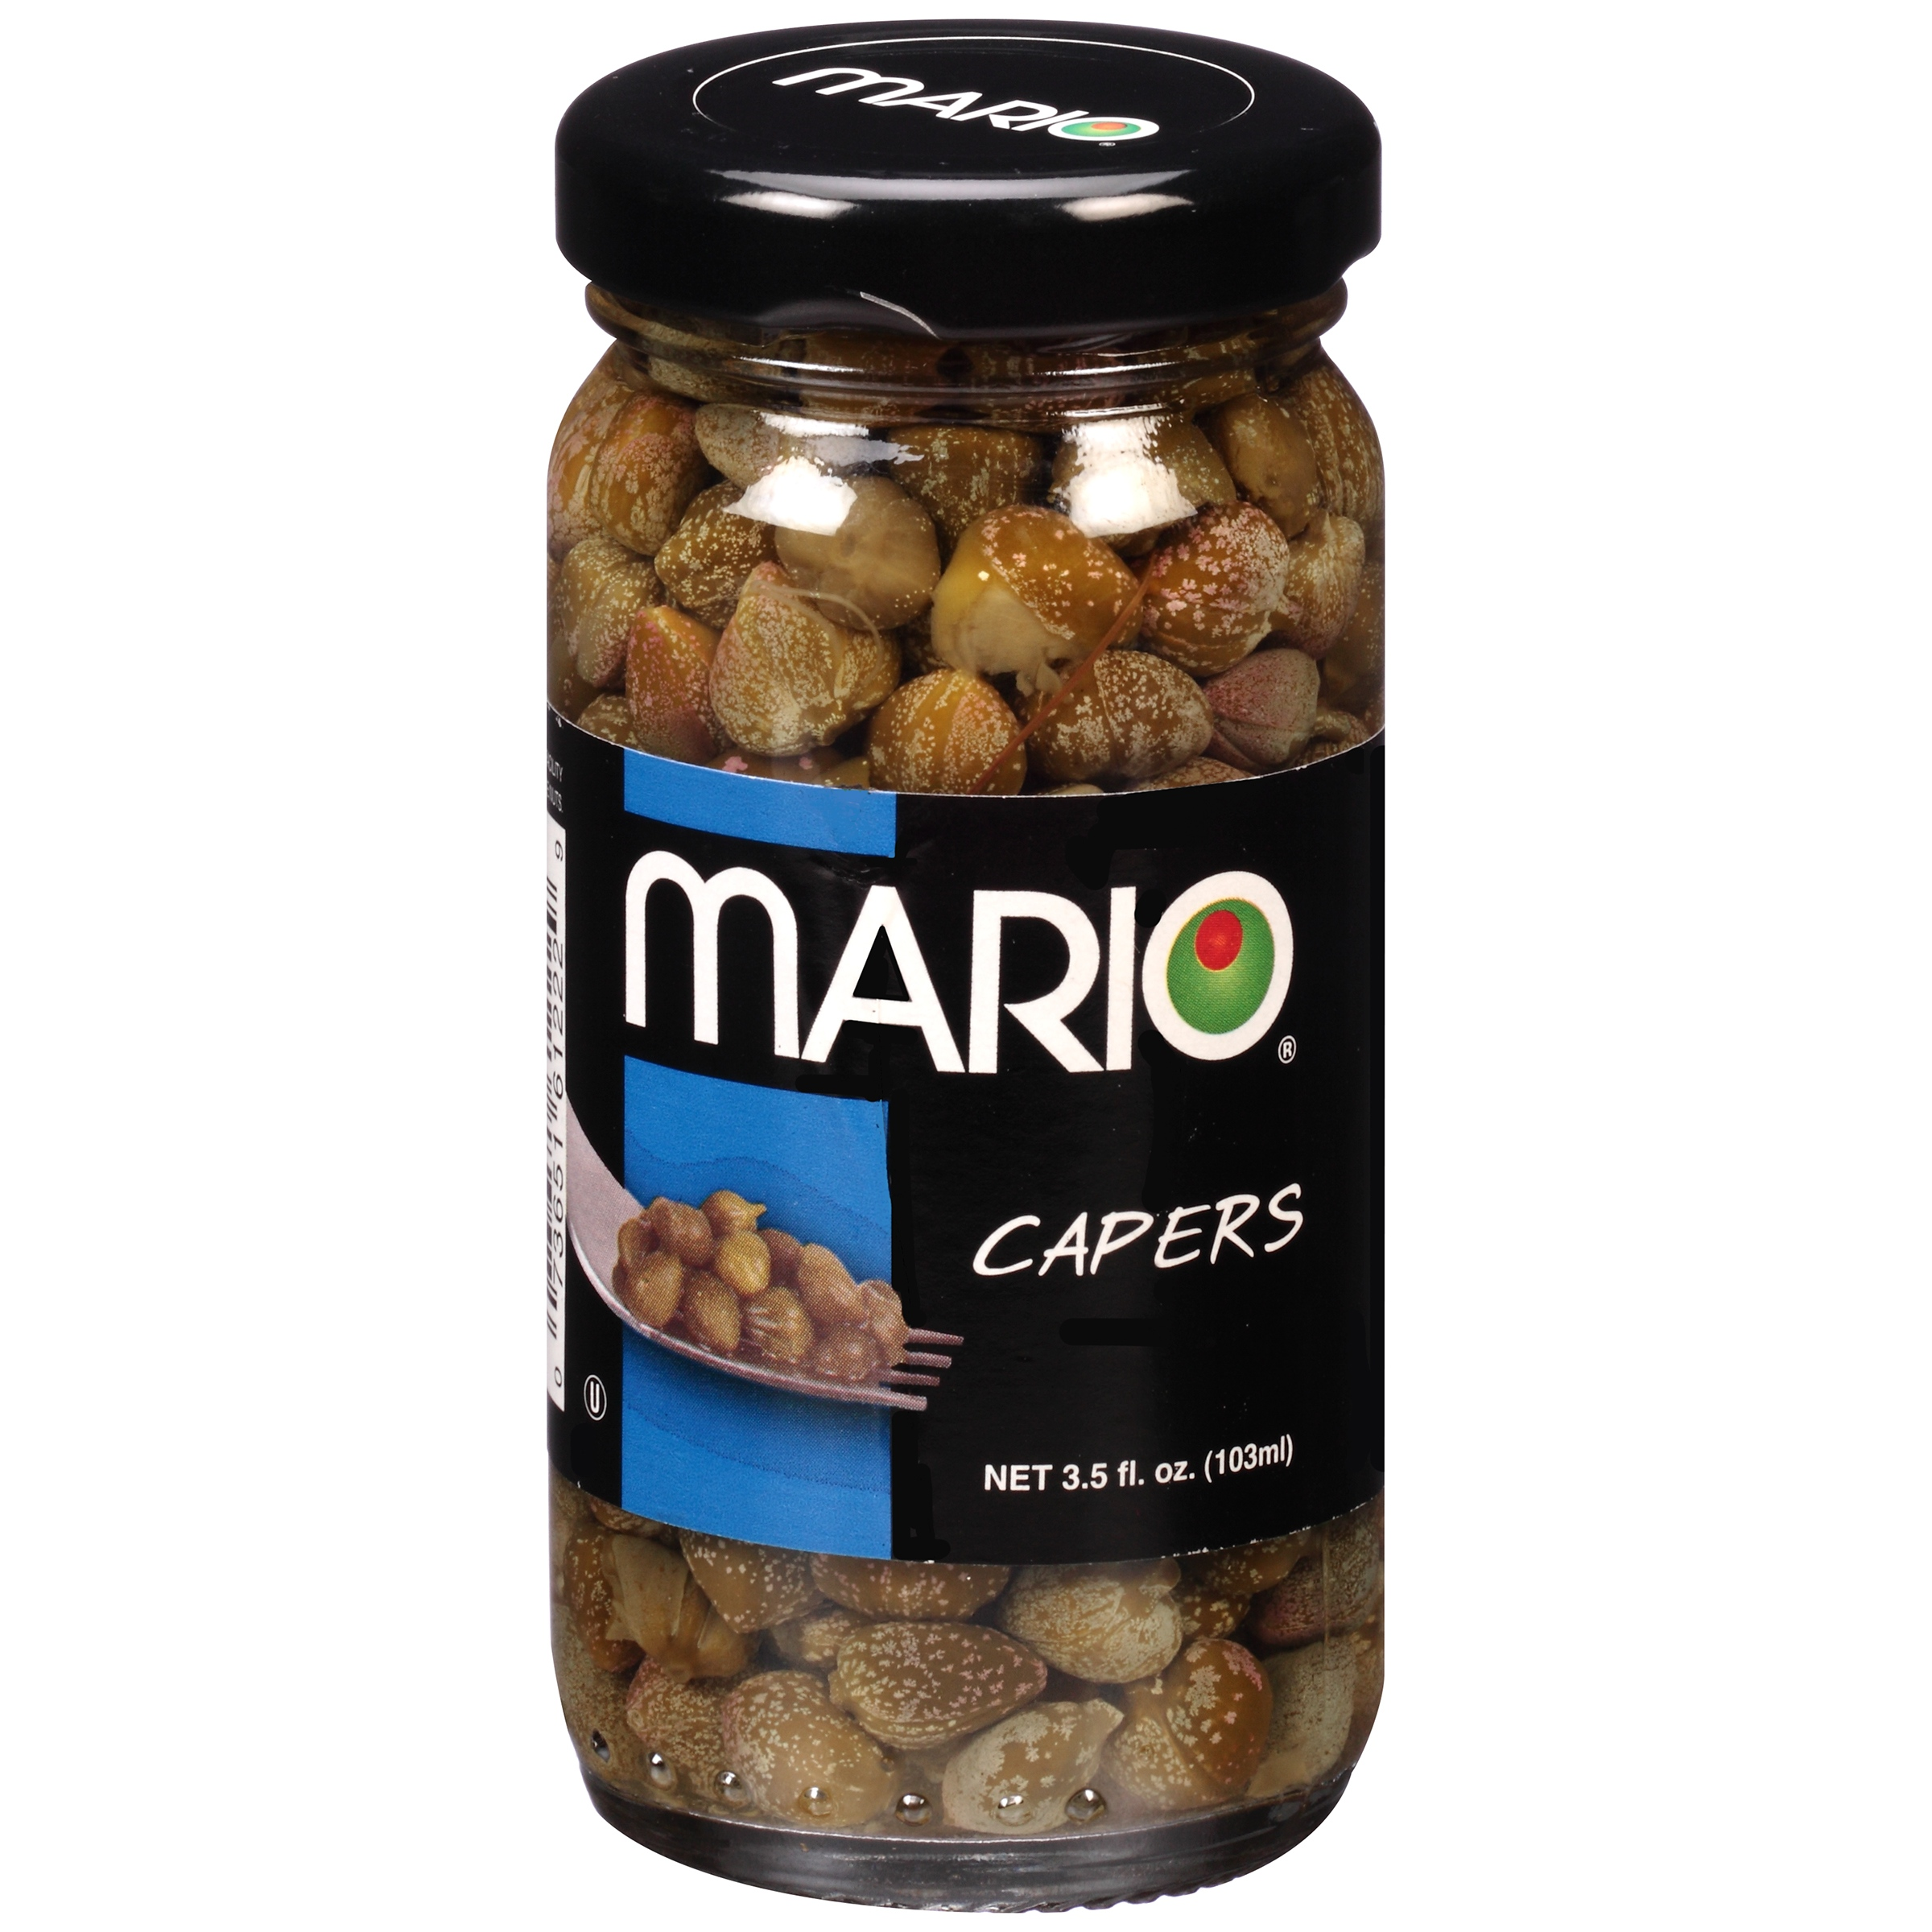 Mario Capers Nonpareil 3.5oz by Mario Camacho Foods